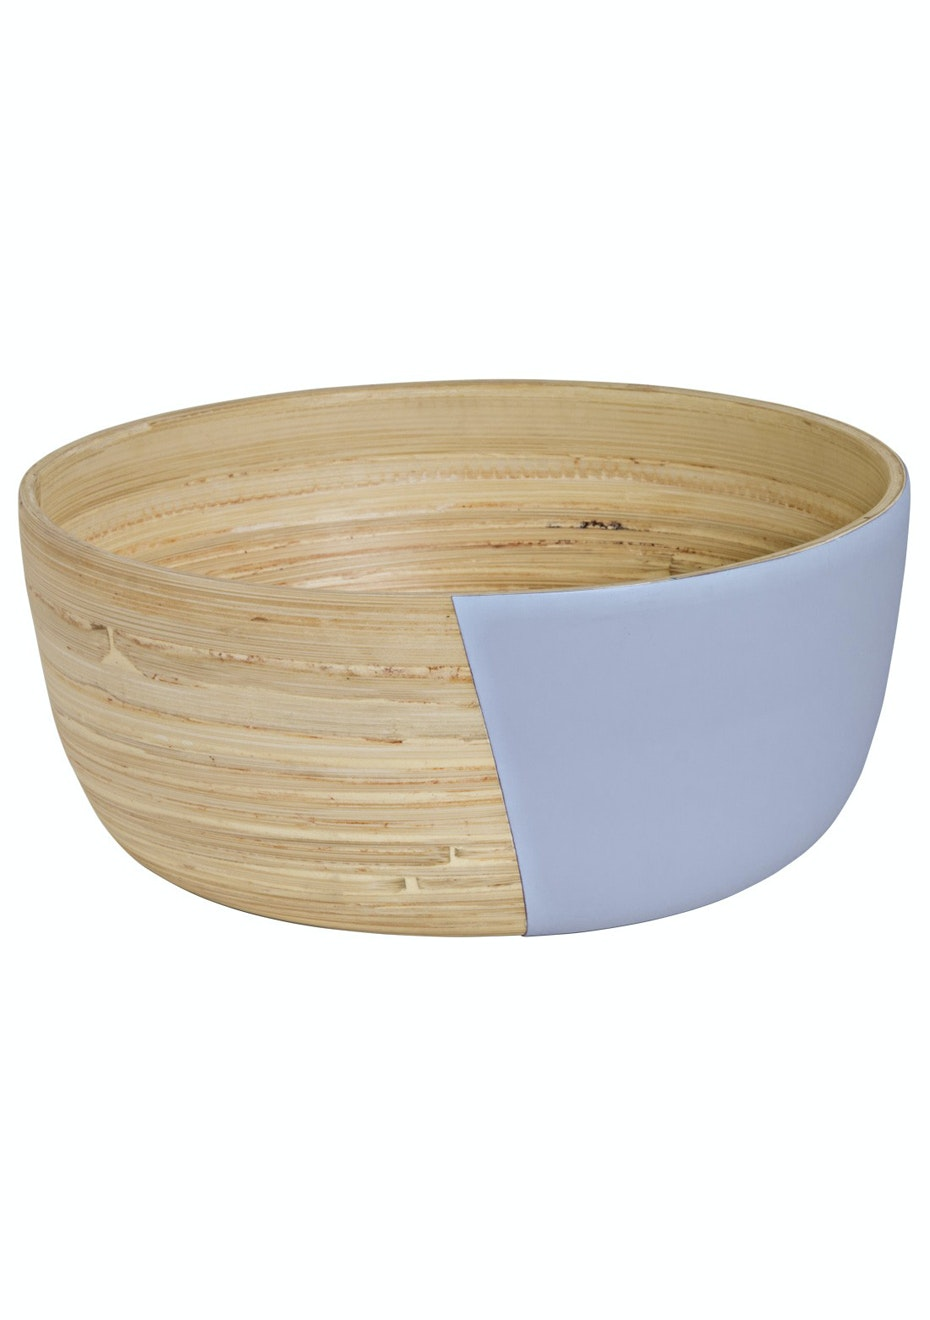 Jason - Lacquered Wooden Bowl Large - Lilac